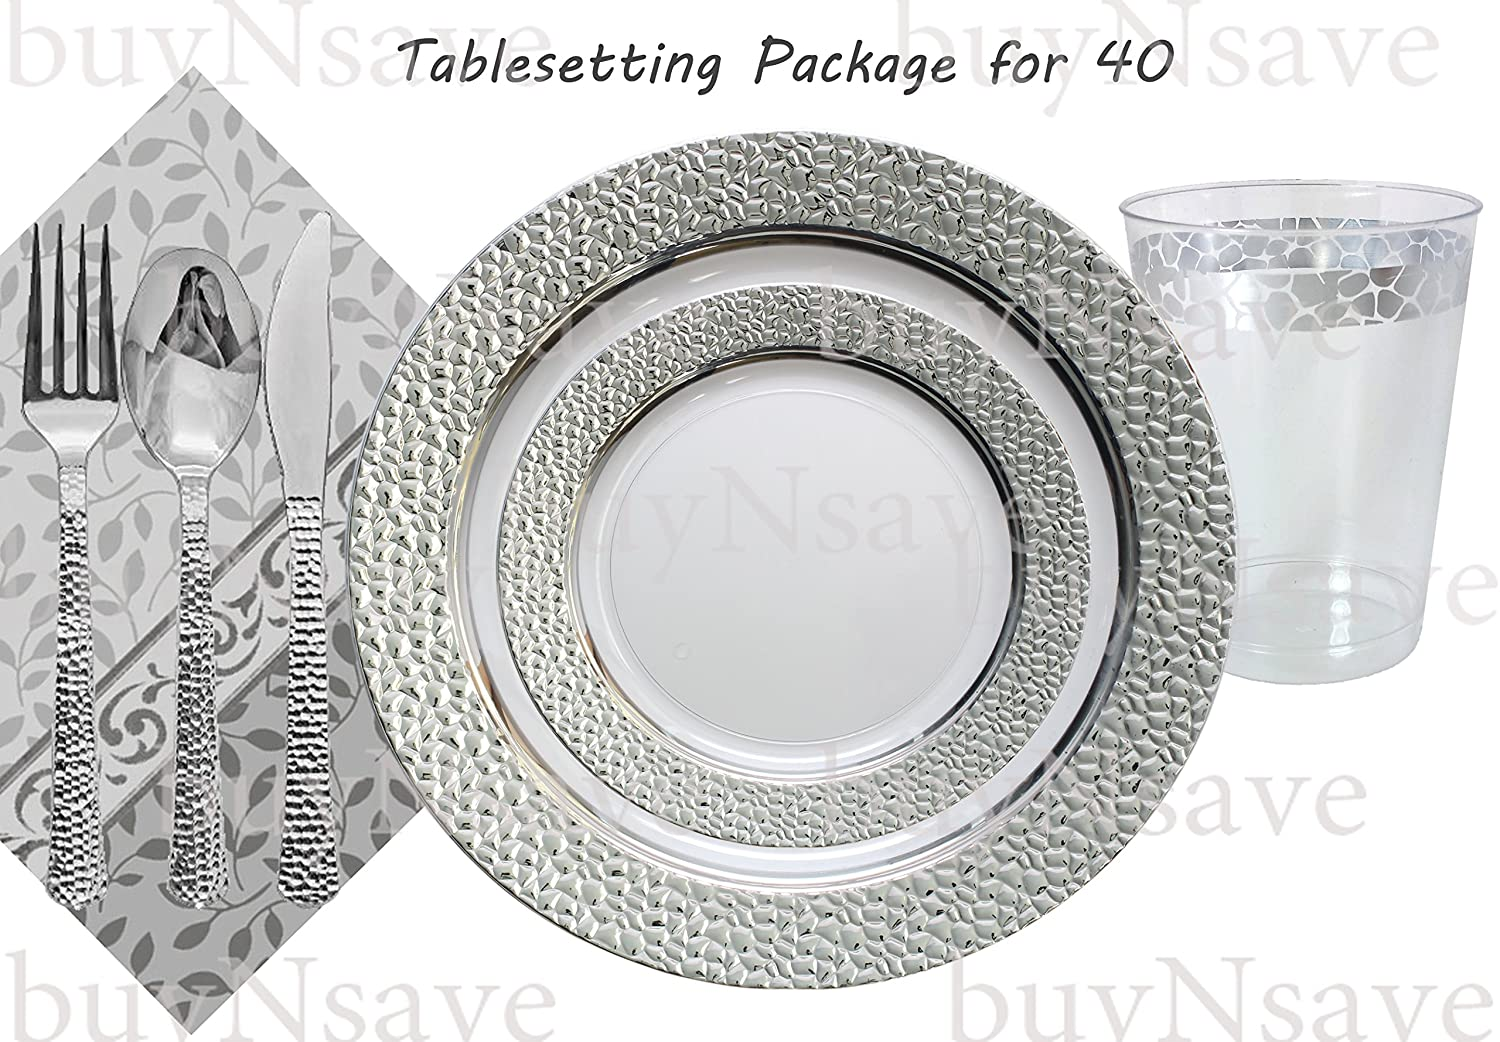 Amazon.com Elegant Wedding Party Disposable Plastic Plates Hammered Clear with Silverfor 40 GuestsDinner Plates10.25 Salad Plates7 NapkinsTumblers ...  sc 1 st  Amazon.com & Amazon.com: Elegant Wedding Party Disposable Plastic Plates Hammered ...